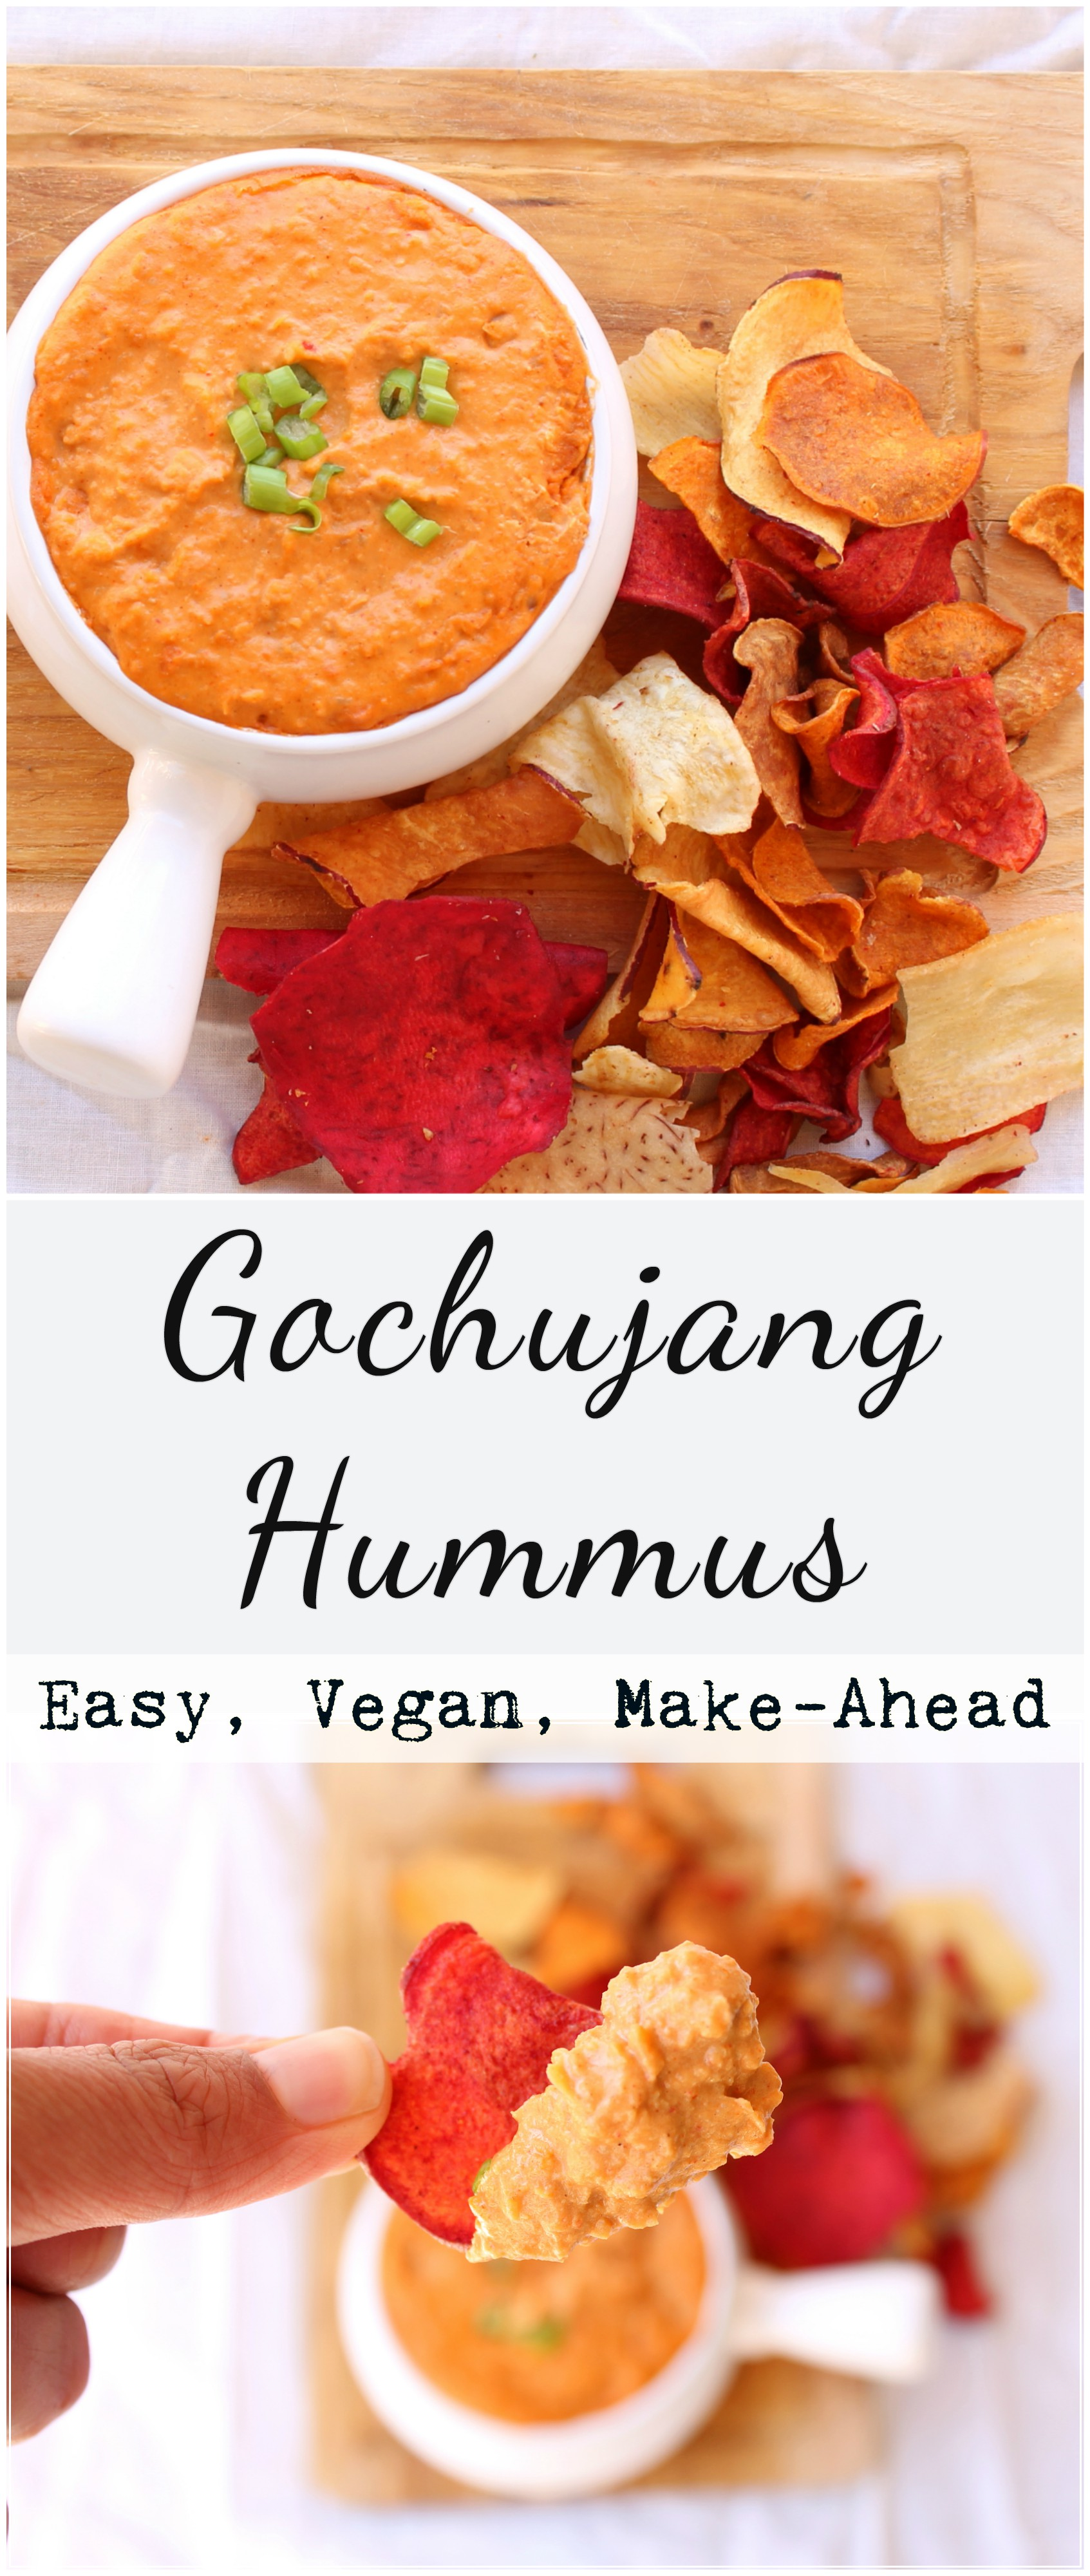 Take your regular hummus to a next level by adding Gochujang, a Korean fermented soy bean red chili paste. Naturally vegan, easy, and great for entertaining/snacking!